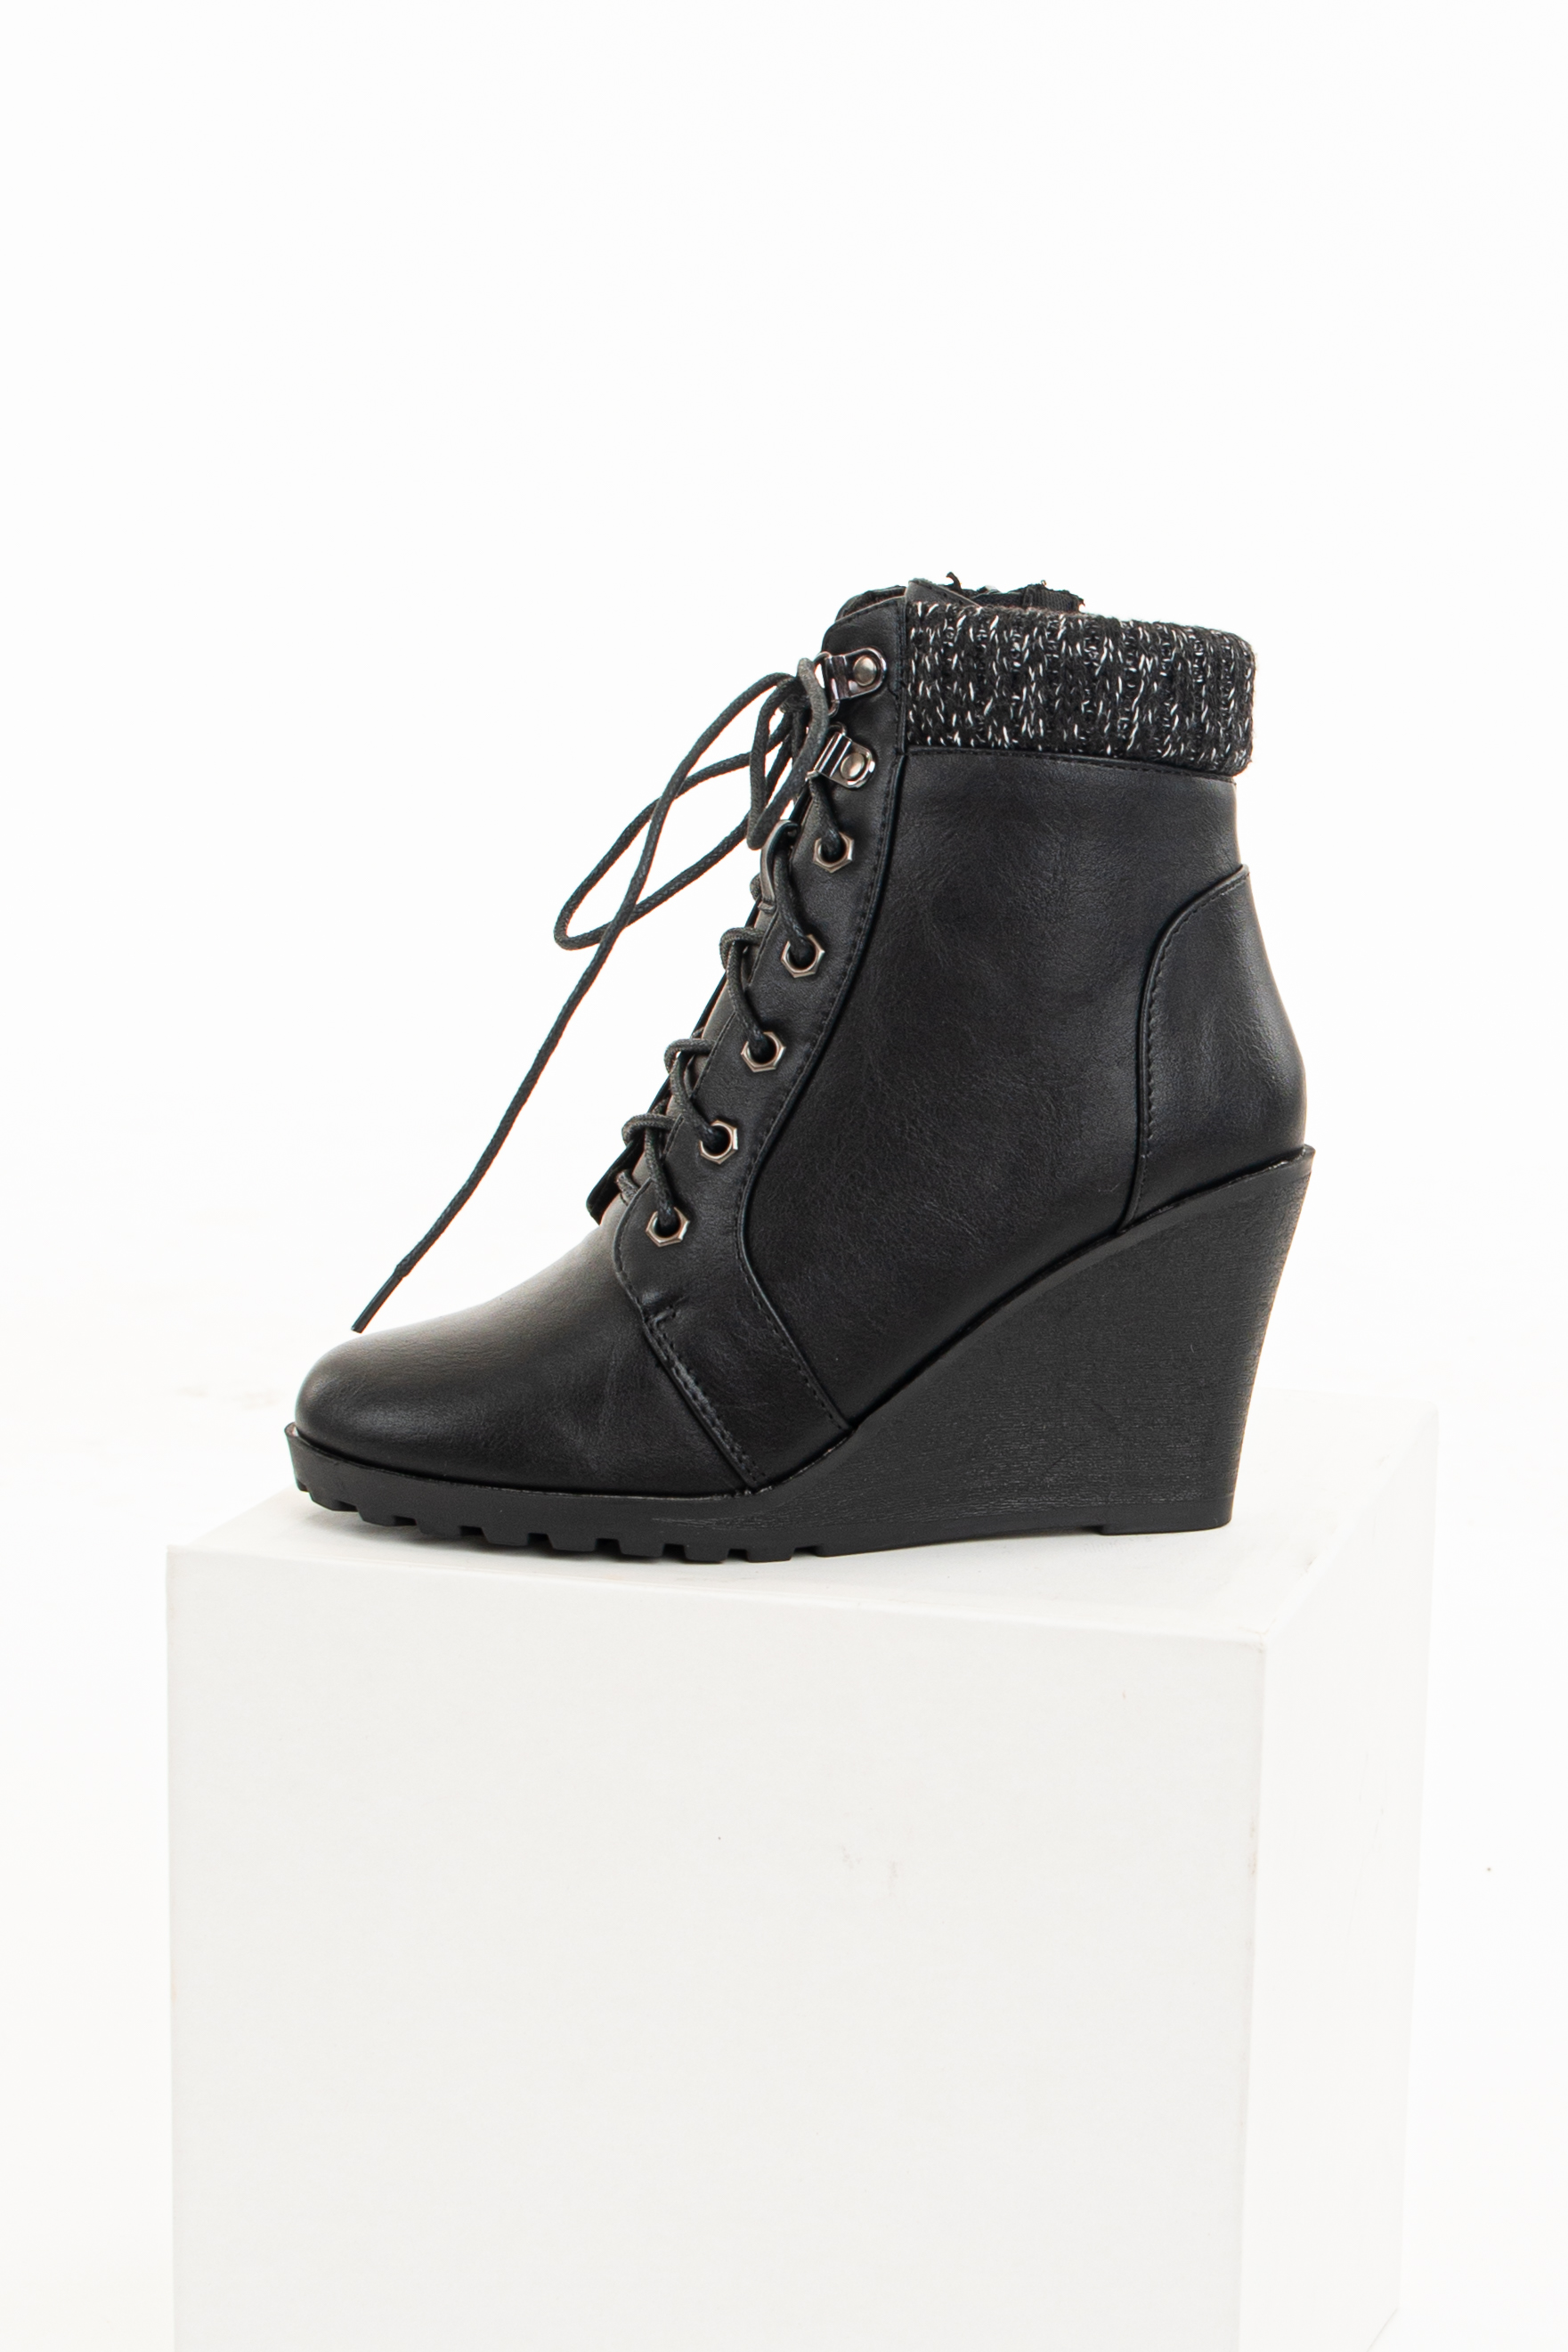 Black Lace Up Wedge Bootie with Sweater Detail on Ankle